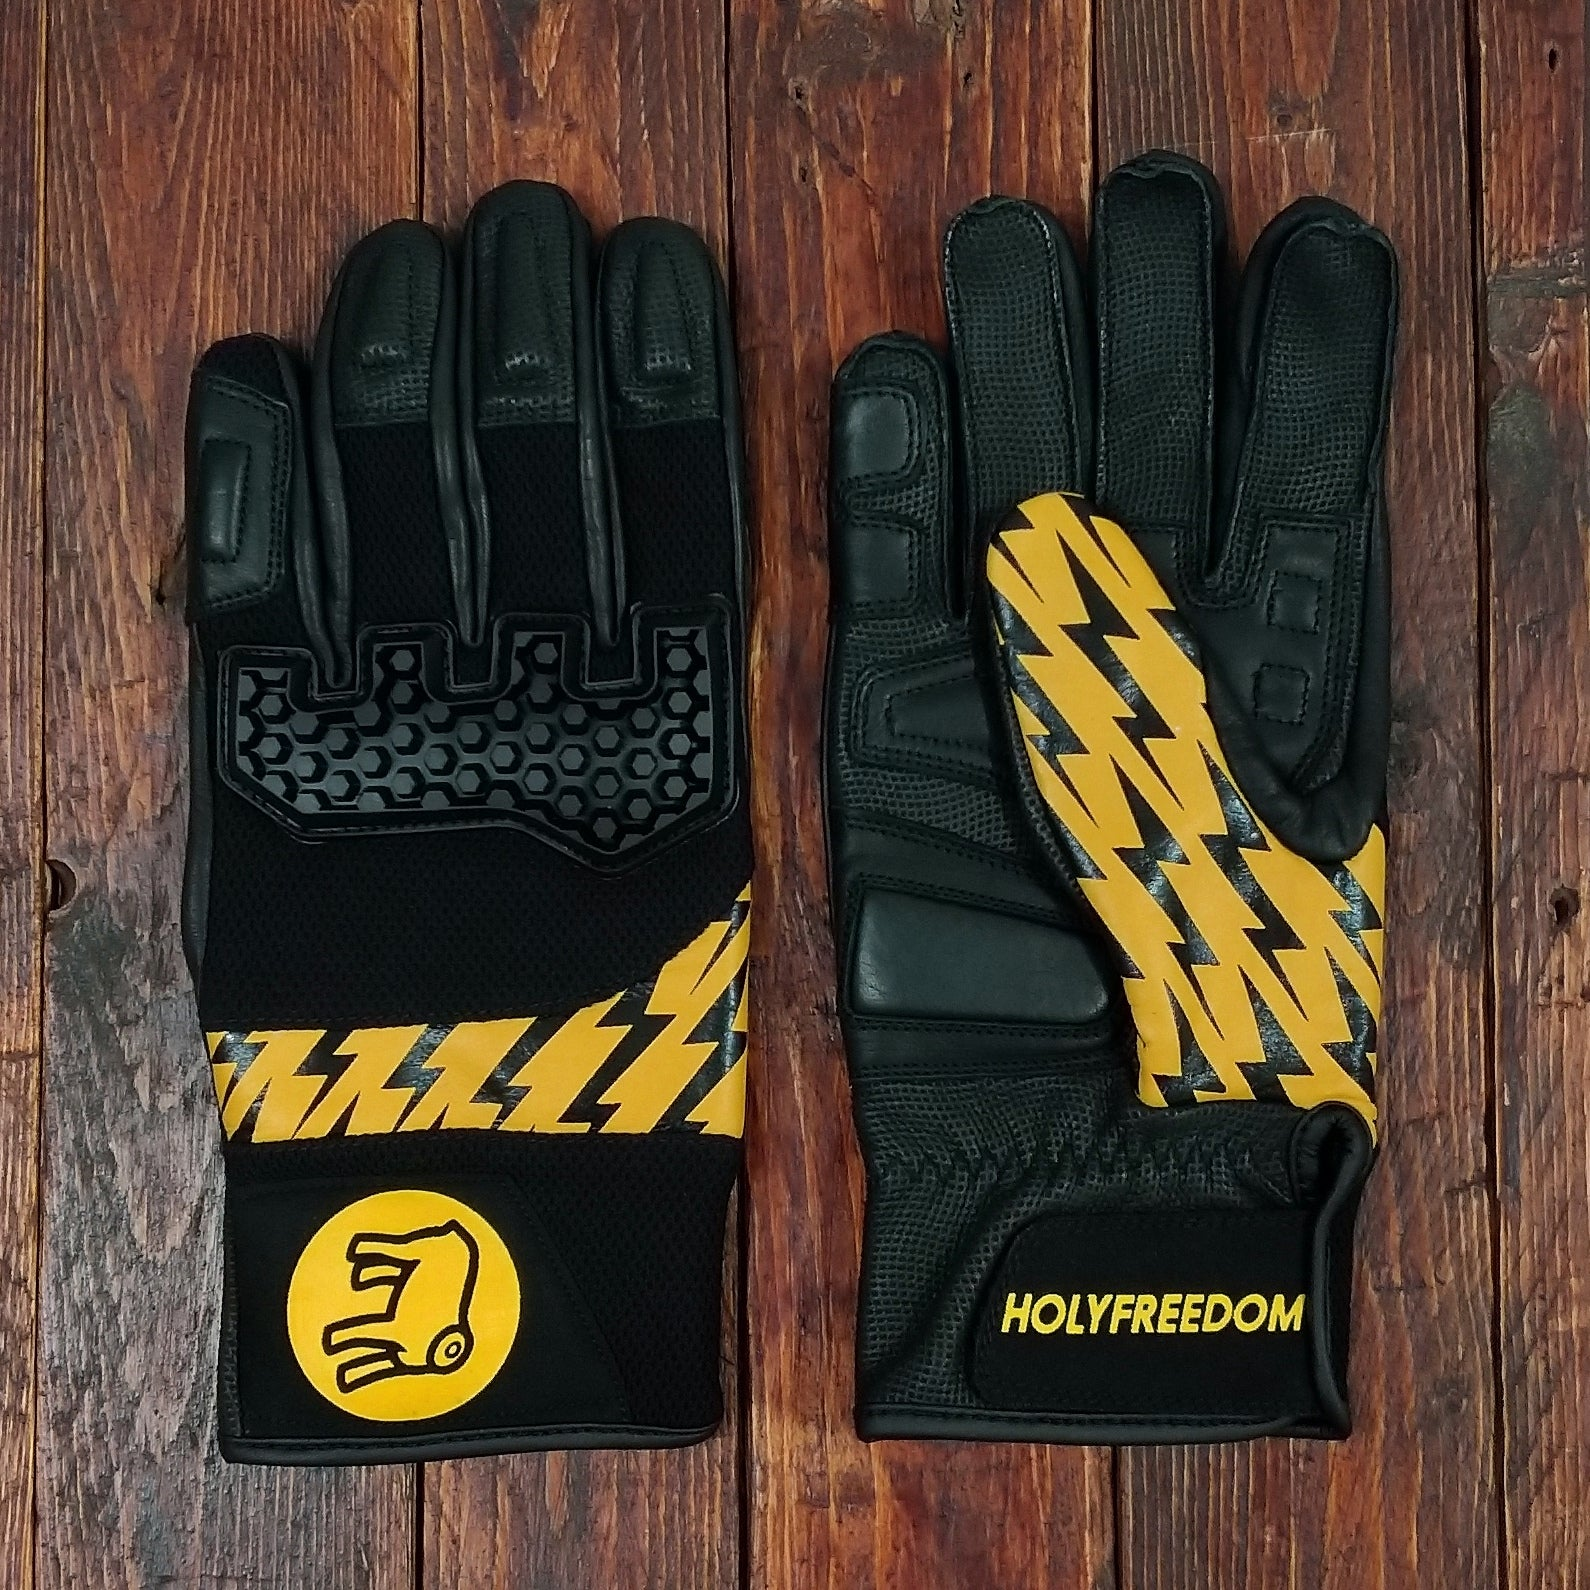 Holy Freedom Saetta motorcycle gloves